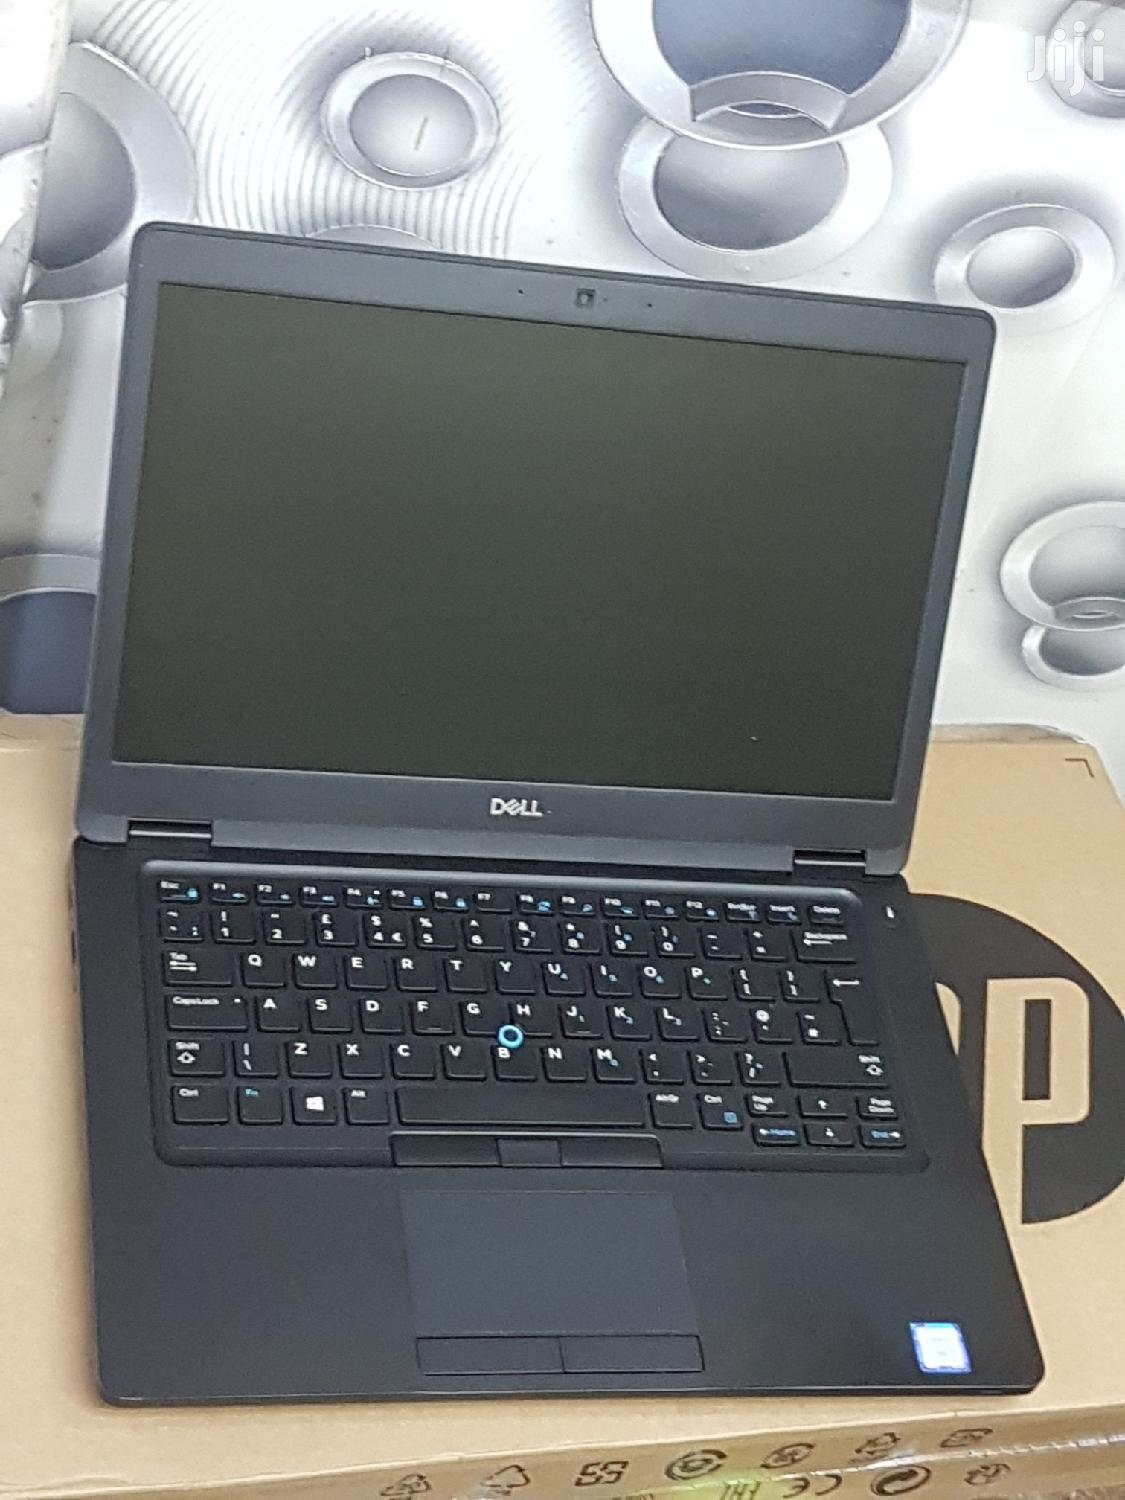 New Laptop Dell Latitude E5570 8GB Intel Core i5 HDD 500GB | Laptops & Computers for sale in Nairobi Central, Nairobi, Kenya